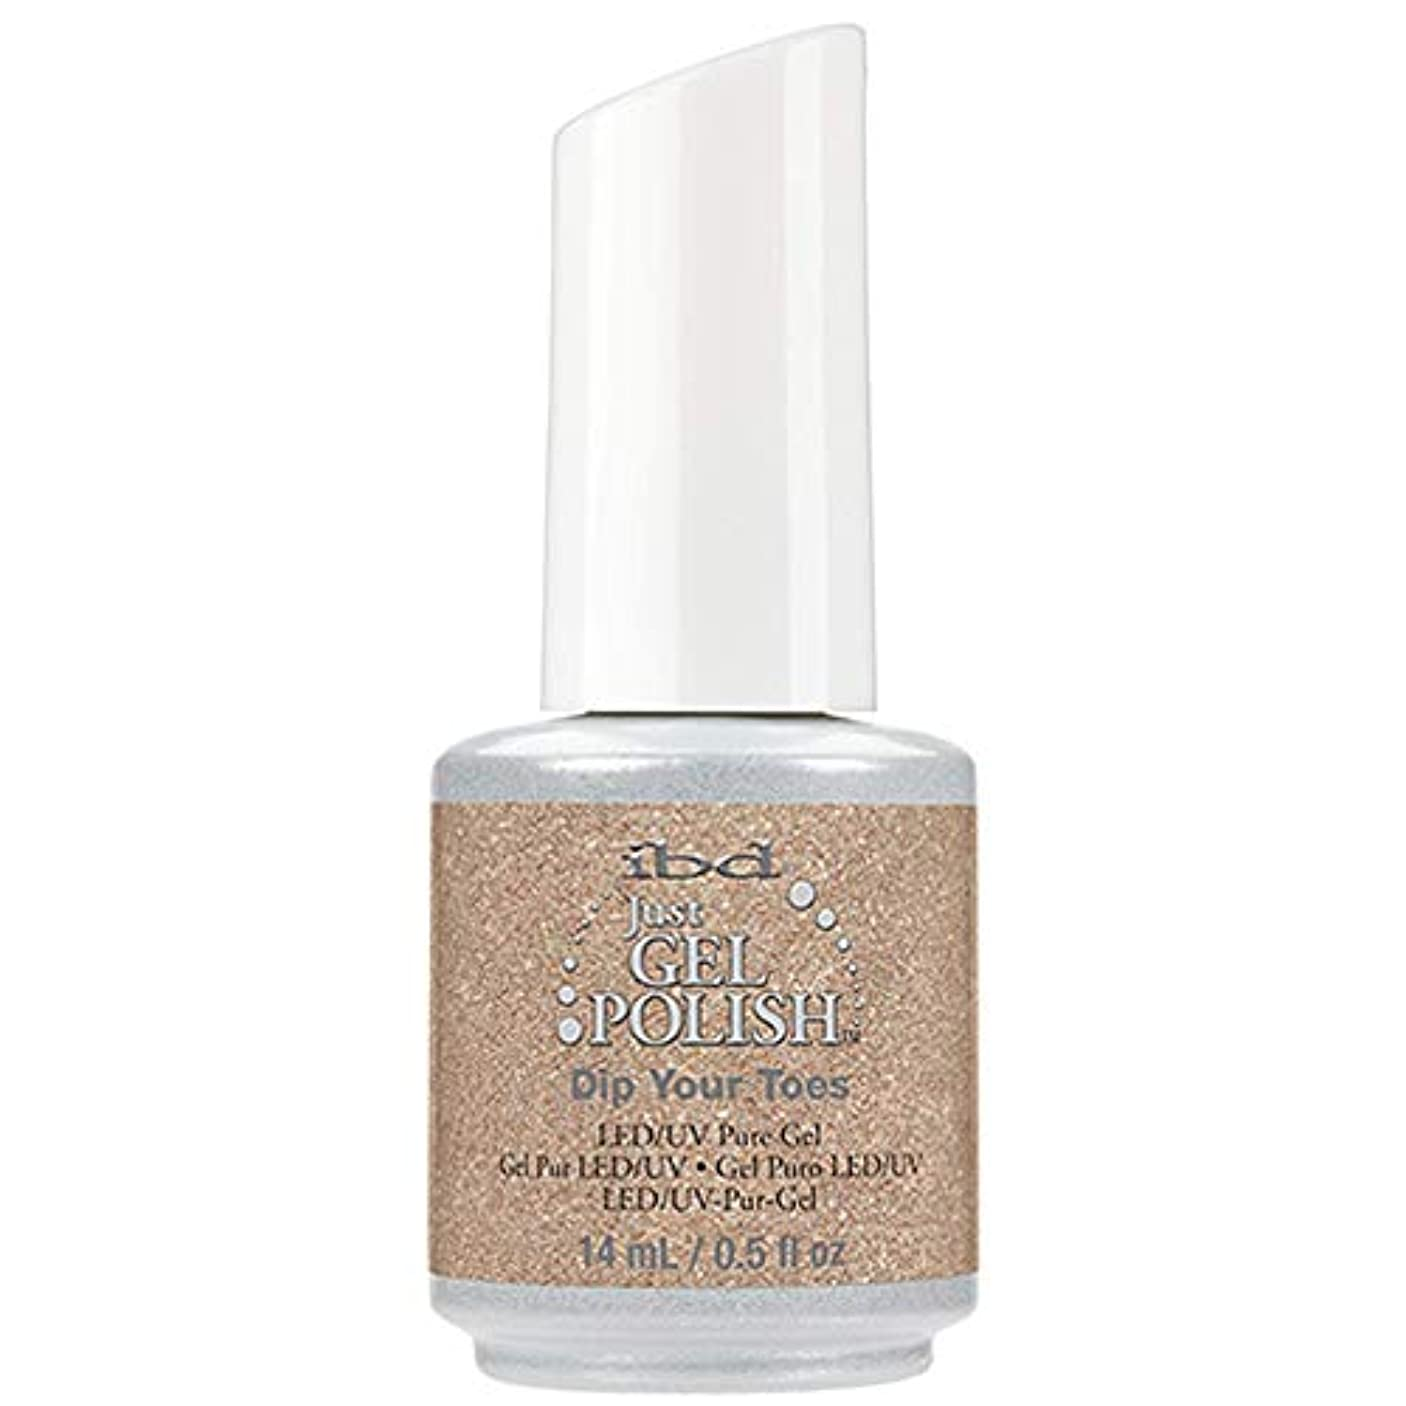 絶え間ない結論許容ibd Just Gel Nail Polish - Dip Your Toes - 14ml / 0.5oz